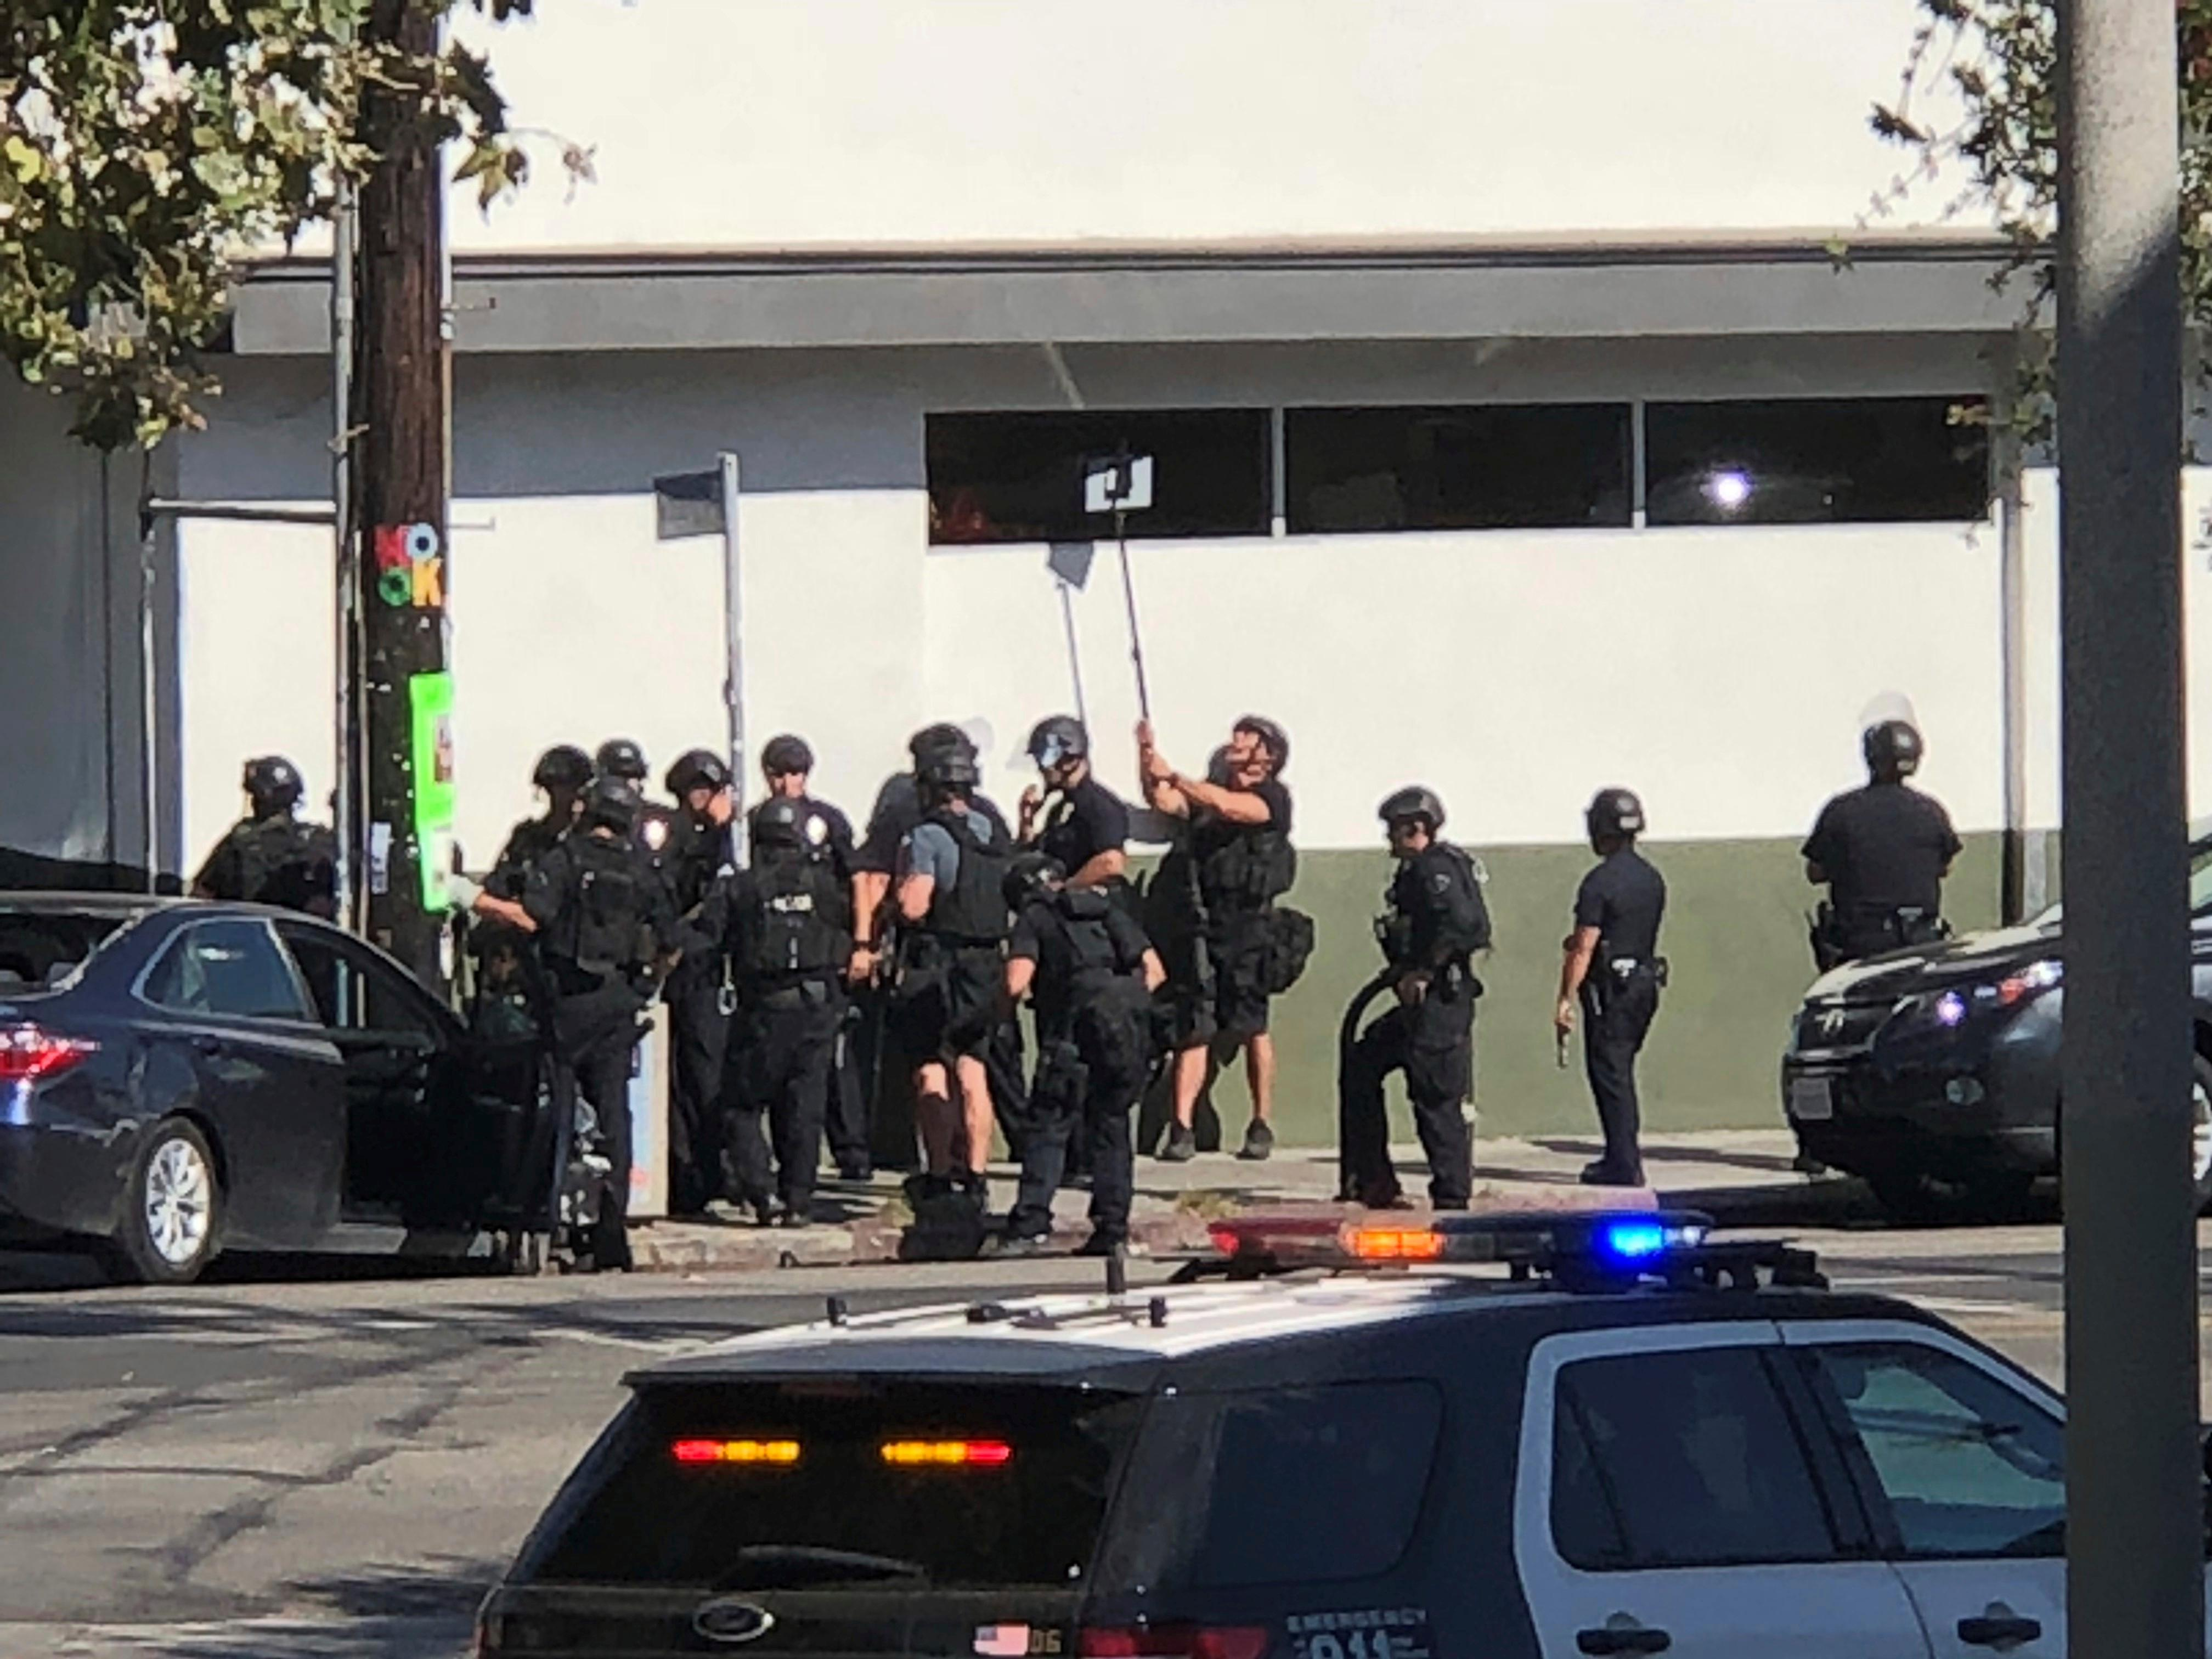 In this photo provided by Christian Dunlop, police officers use a mirror to see inside a Trader Joe's store in the Silver Lake neighborhood of Los Angeles on Saturday, July 21, 2018. Police believe a man involved in the standoff with officers shot his grandmother and girlfriend before firing at officers during a pursuit, then crashing outside the supermarket and running inside the store. (Christian Dunlop via AP)